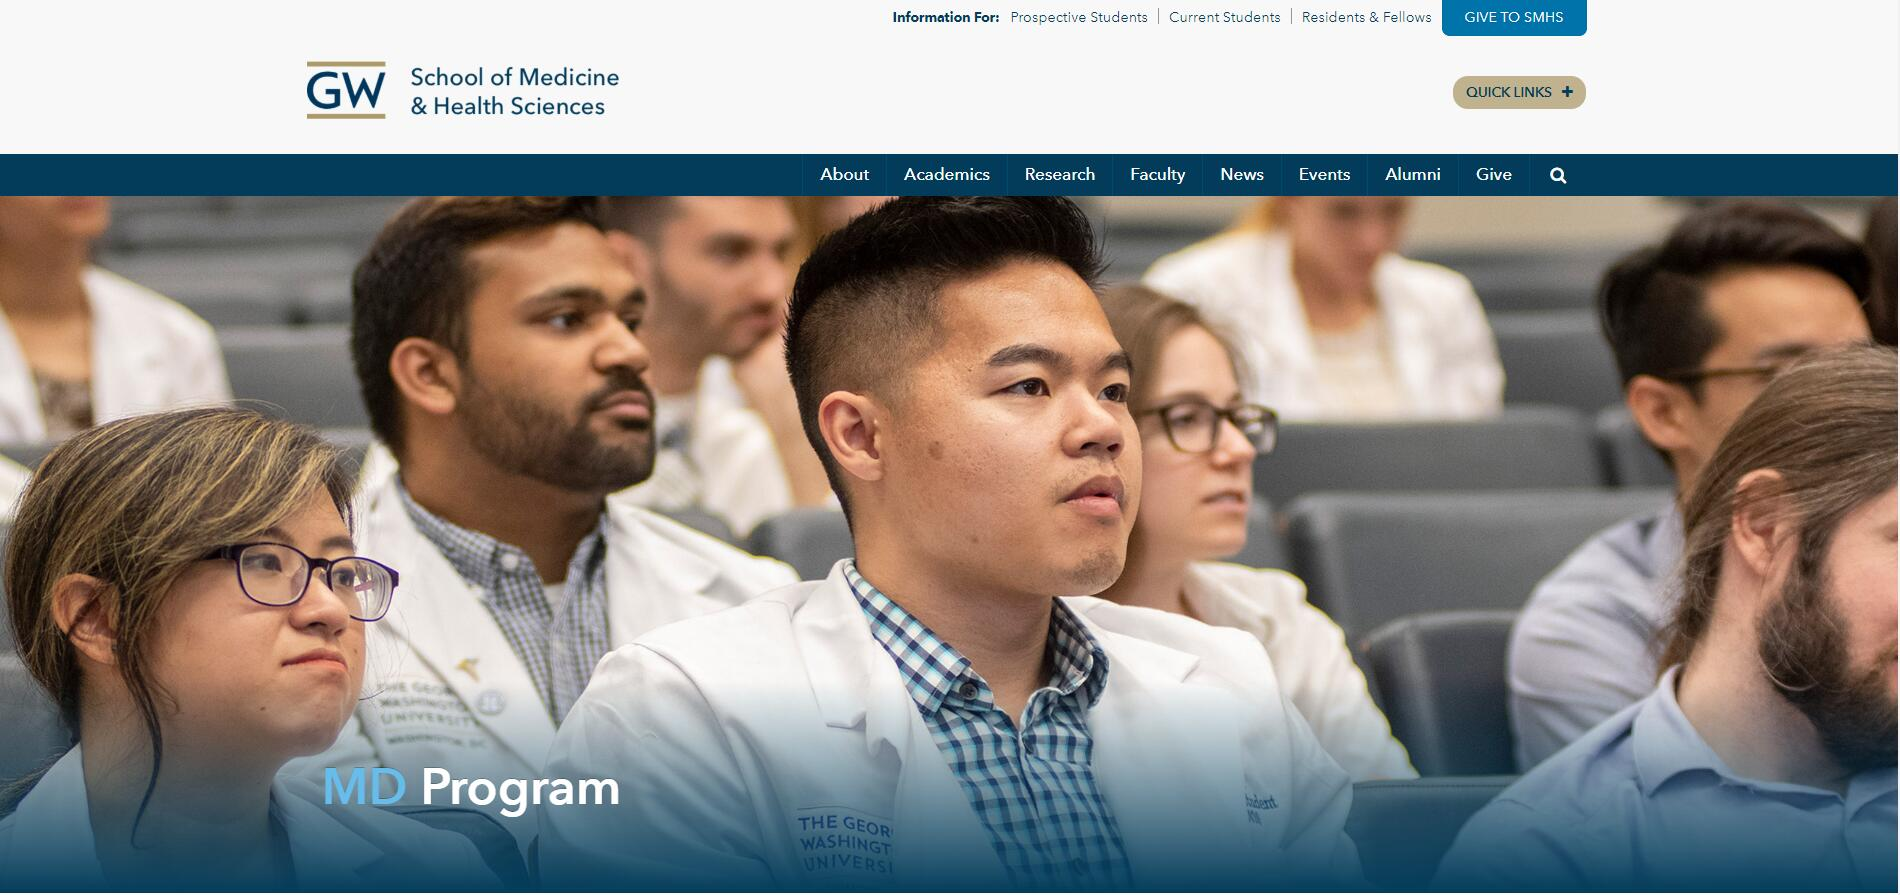 The School of Medicine and Health Sciences at George Washington University